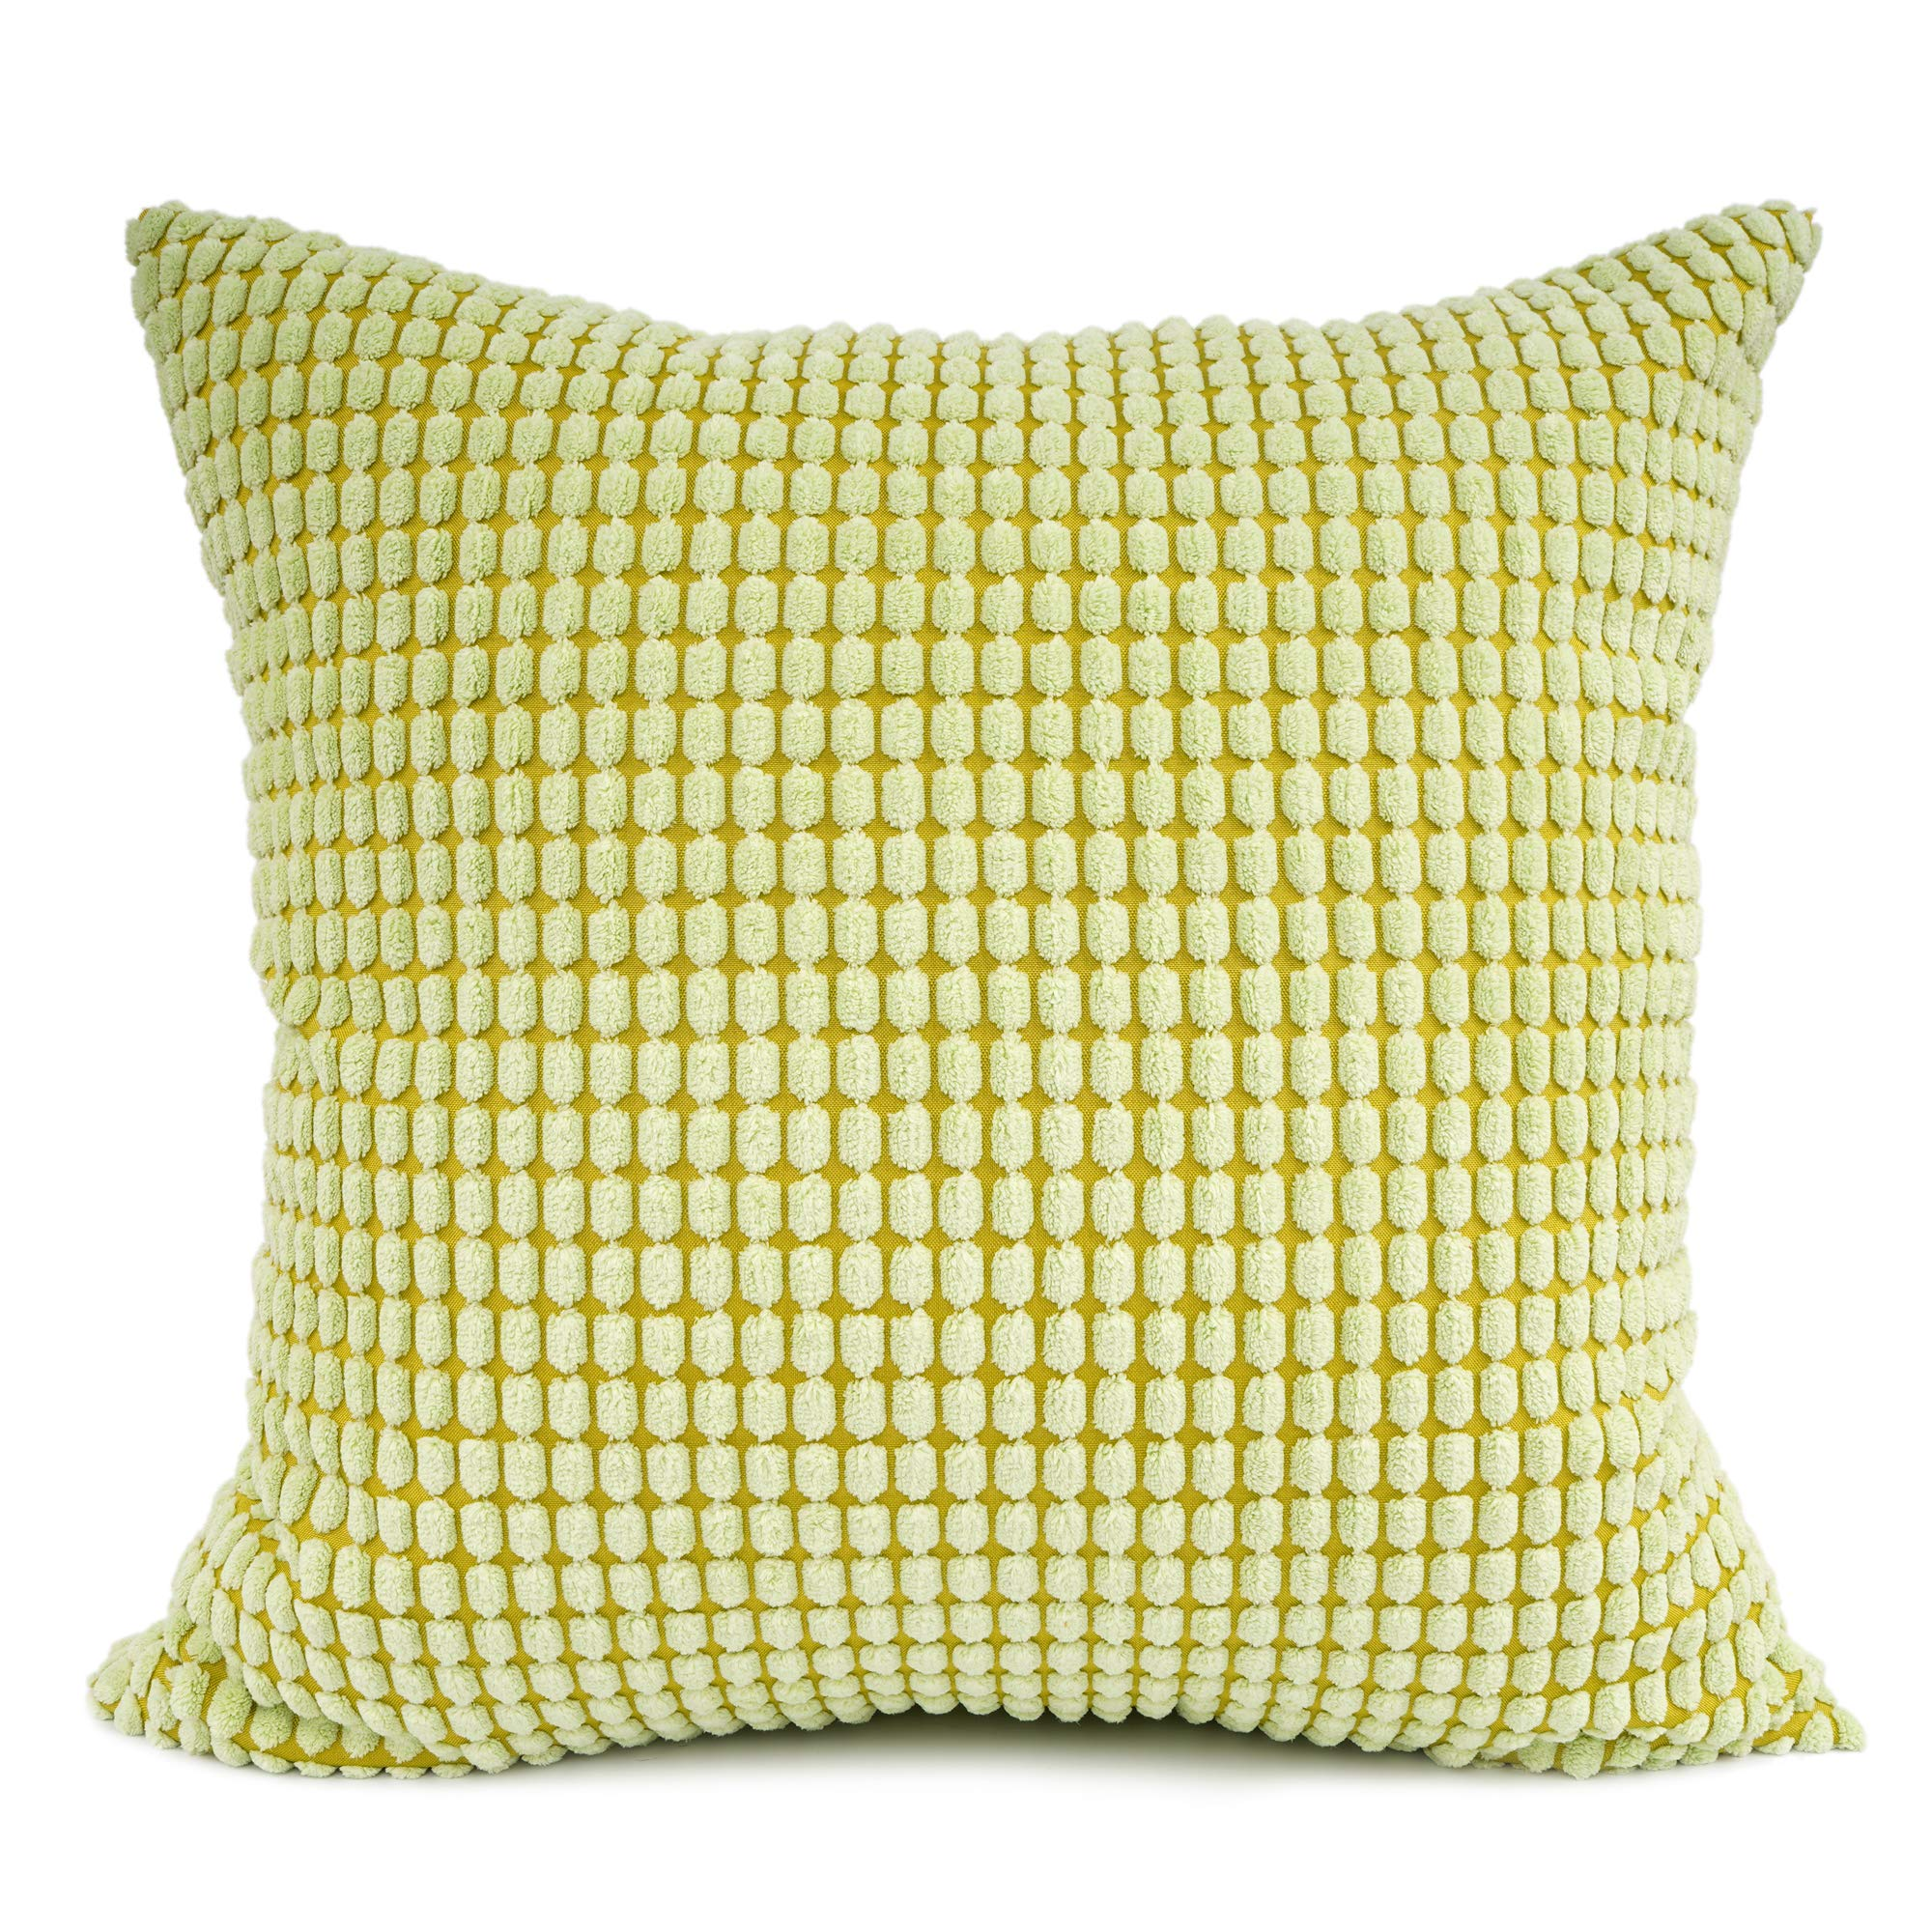 YOUR SMILE Cozy Bolster Pillow Cover Case for Couch Sofa Bed Comfortable Supersoft Corduroy Corn Striped Both Sides 20 X 20 Inches,Green